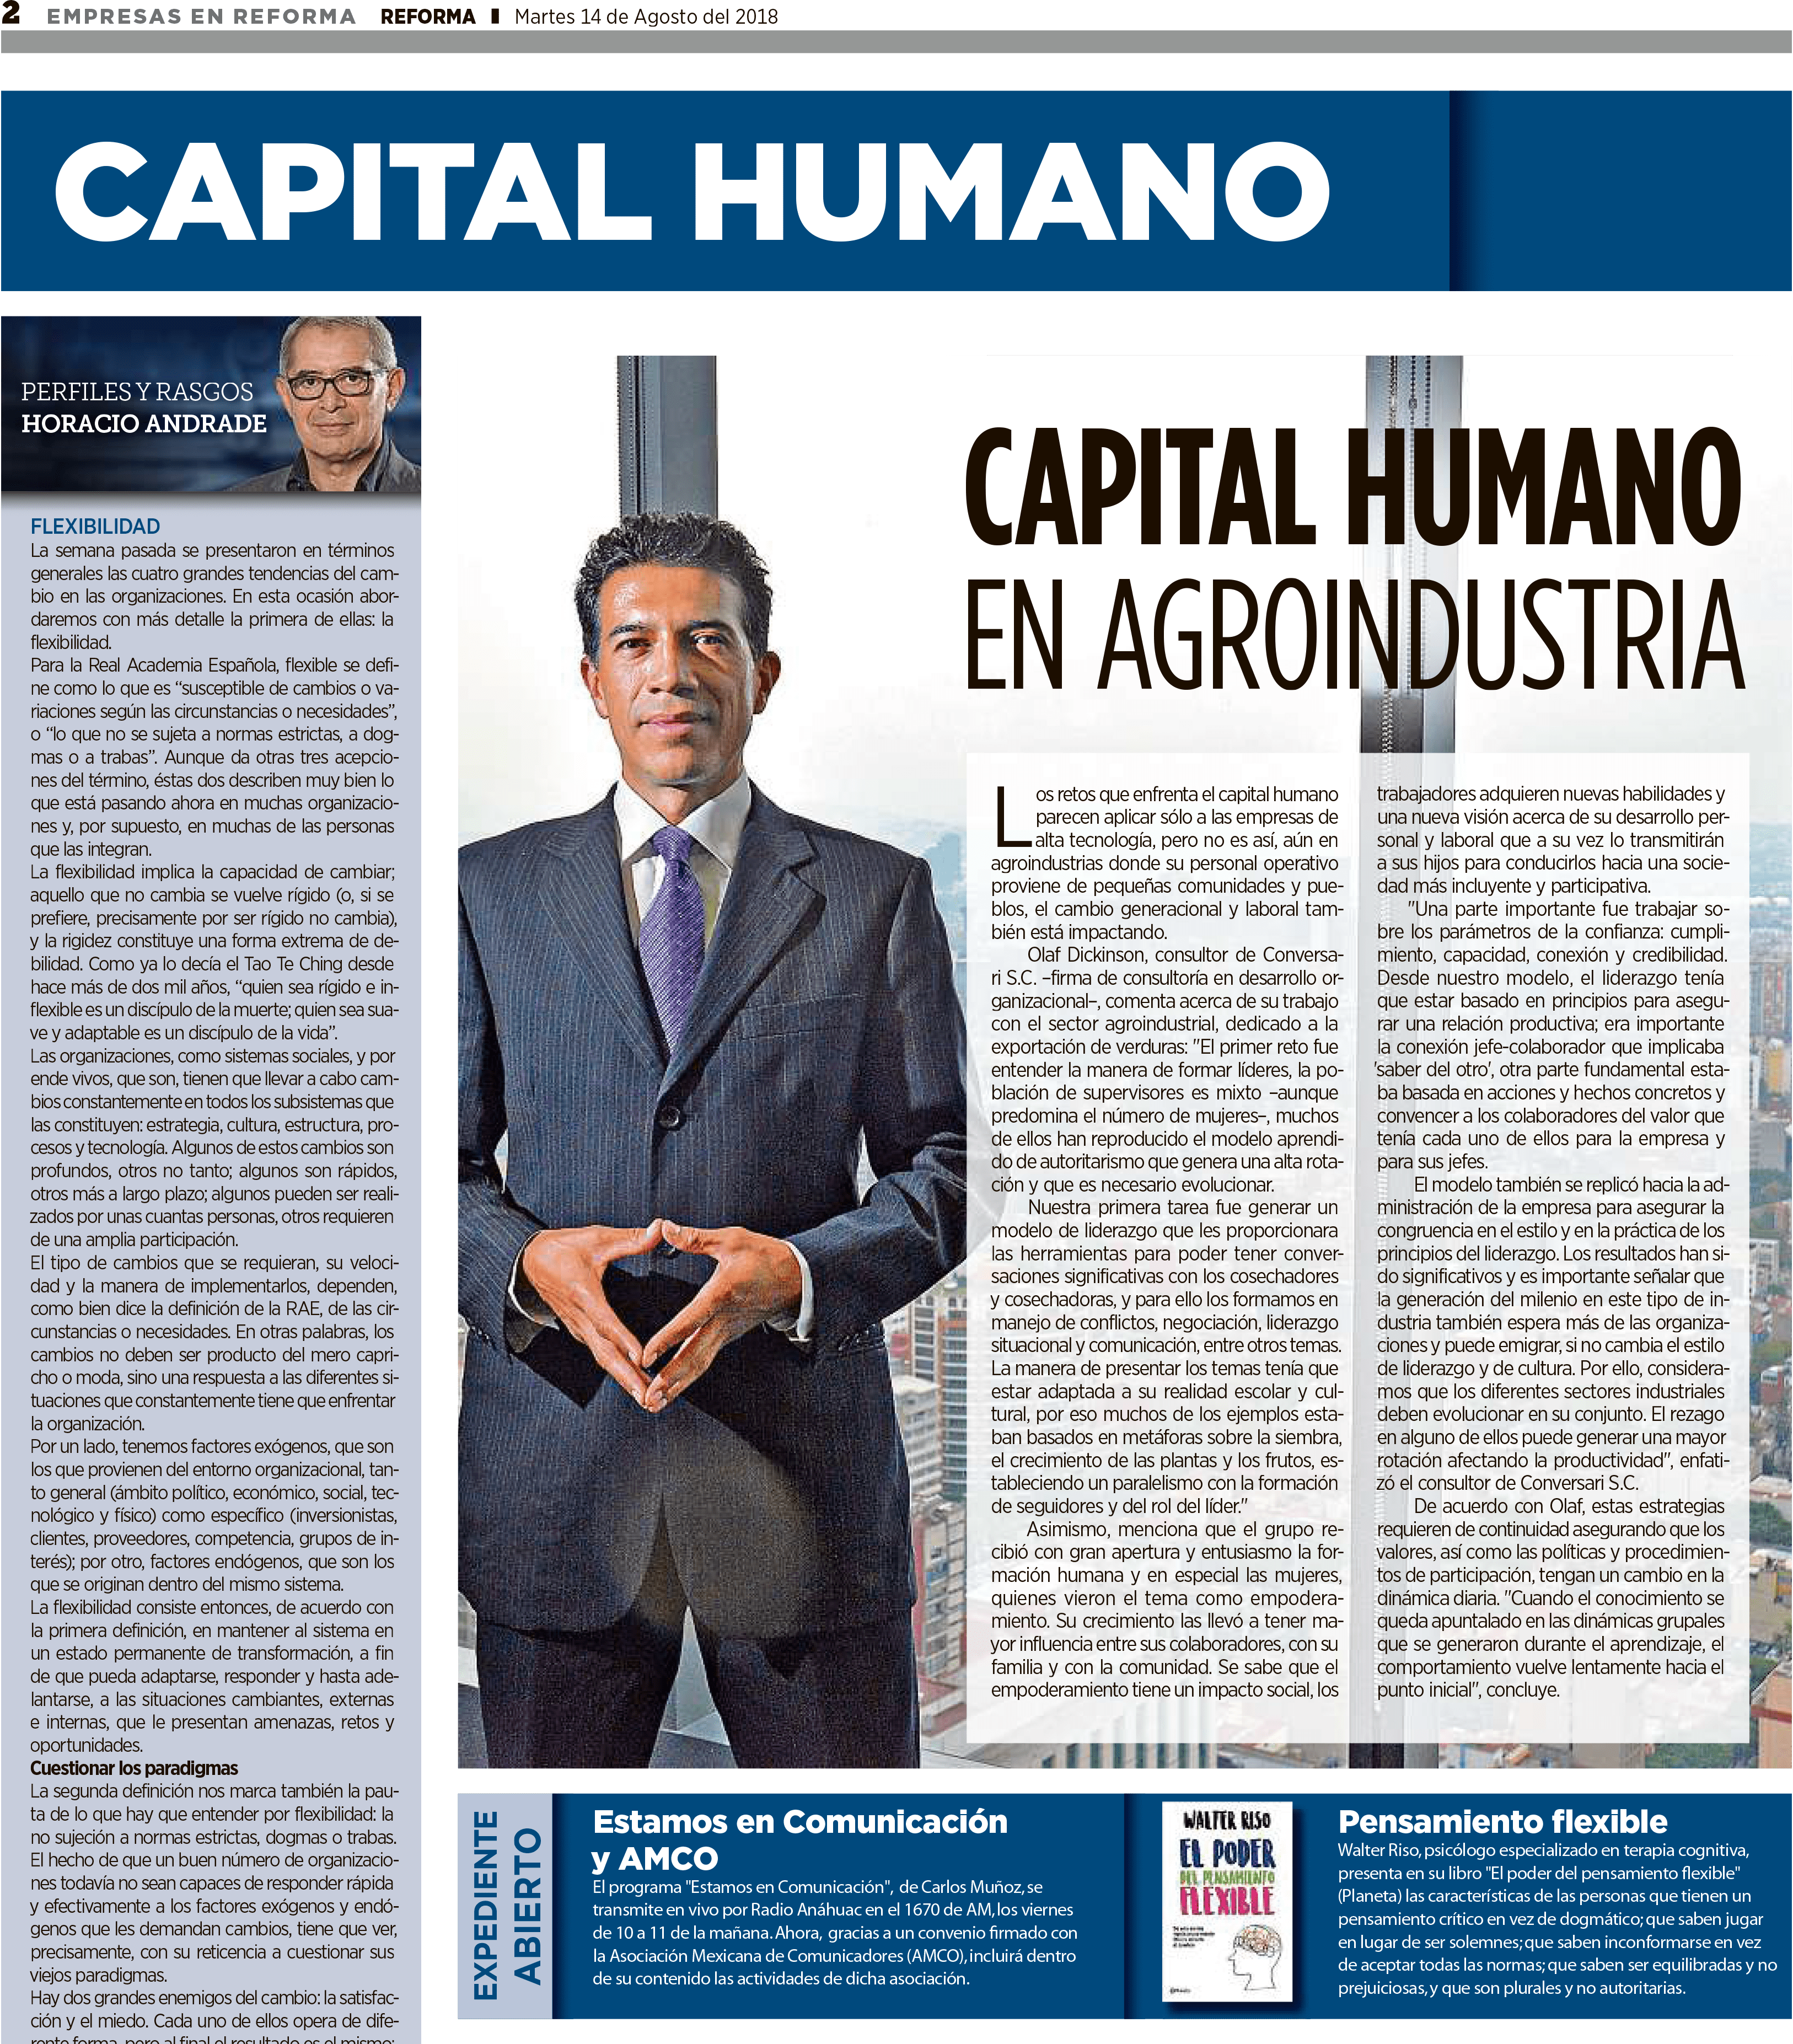 Human Capital in Agricultural Industry